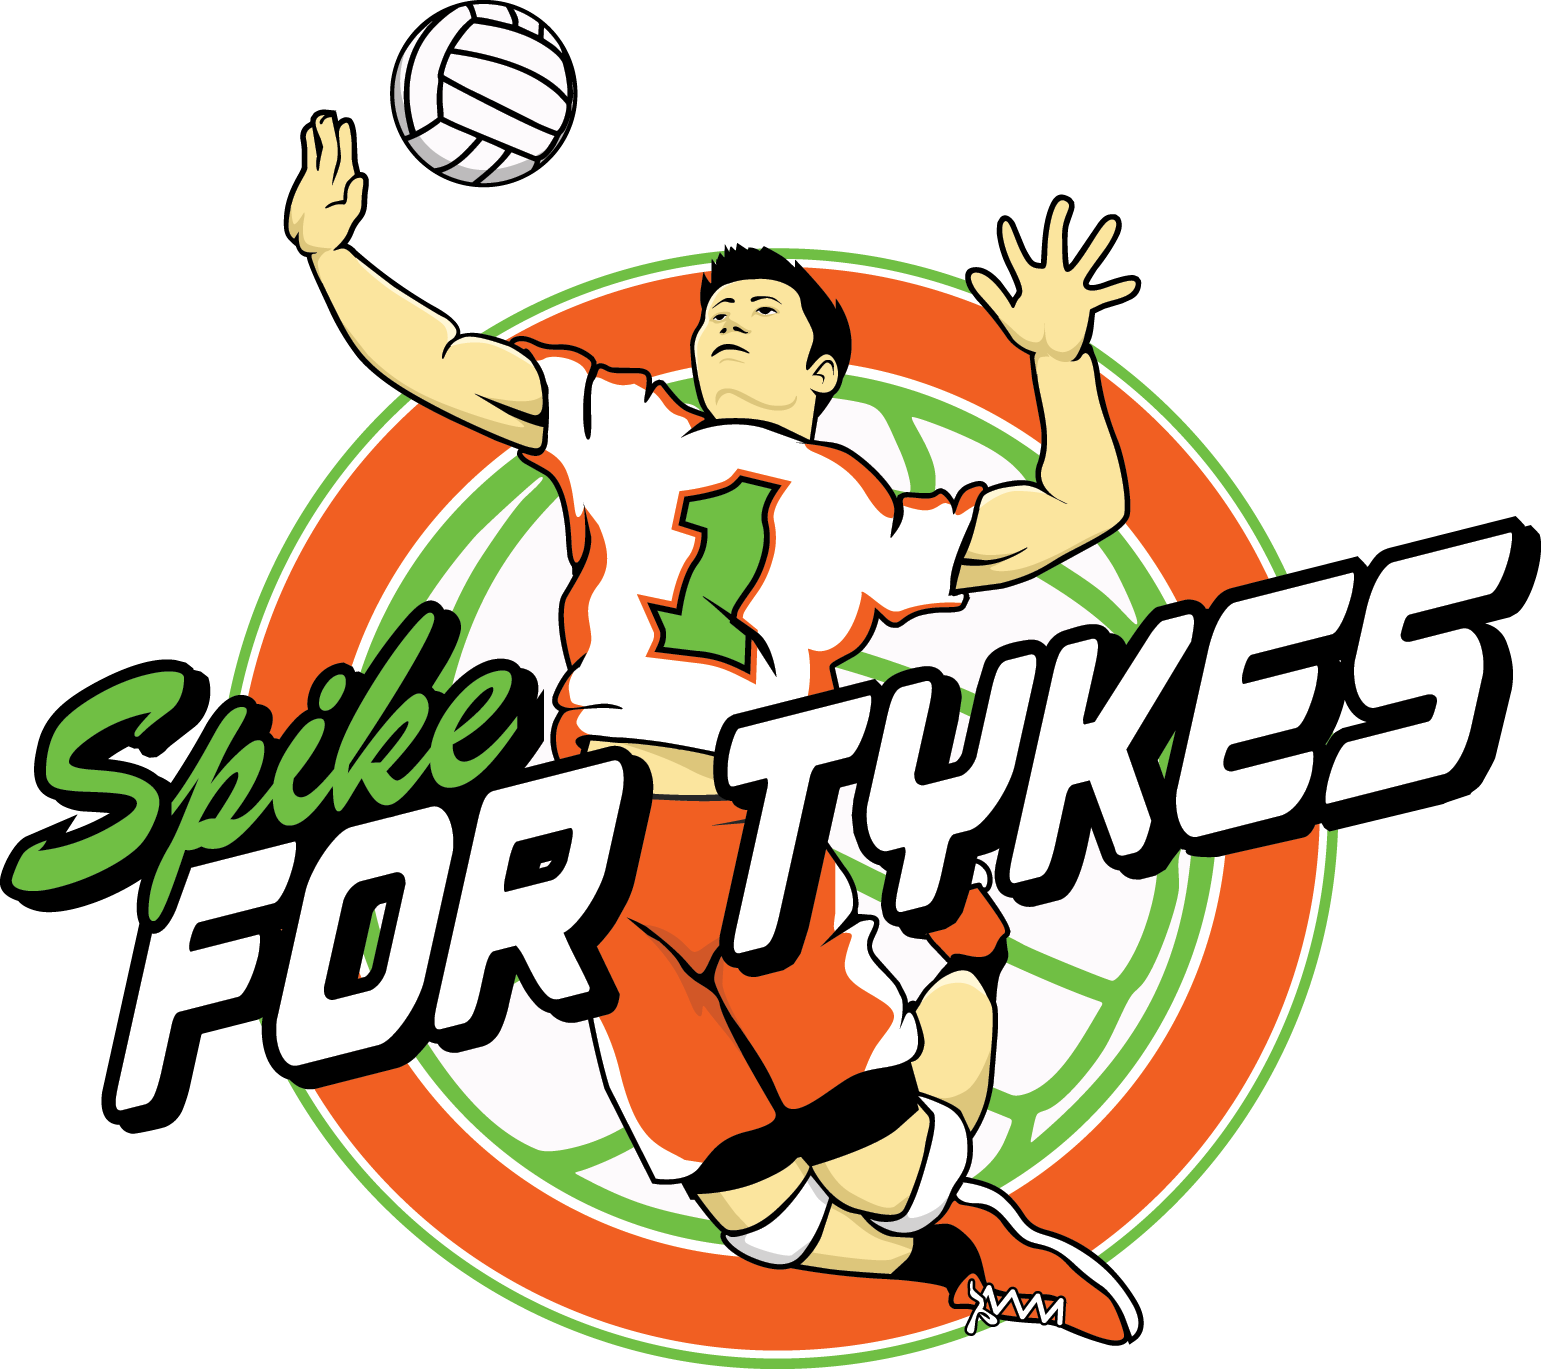 Spike for tykes logo. Clipart volleyball champions